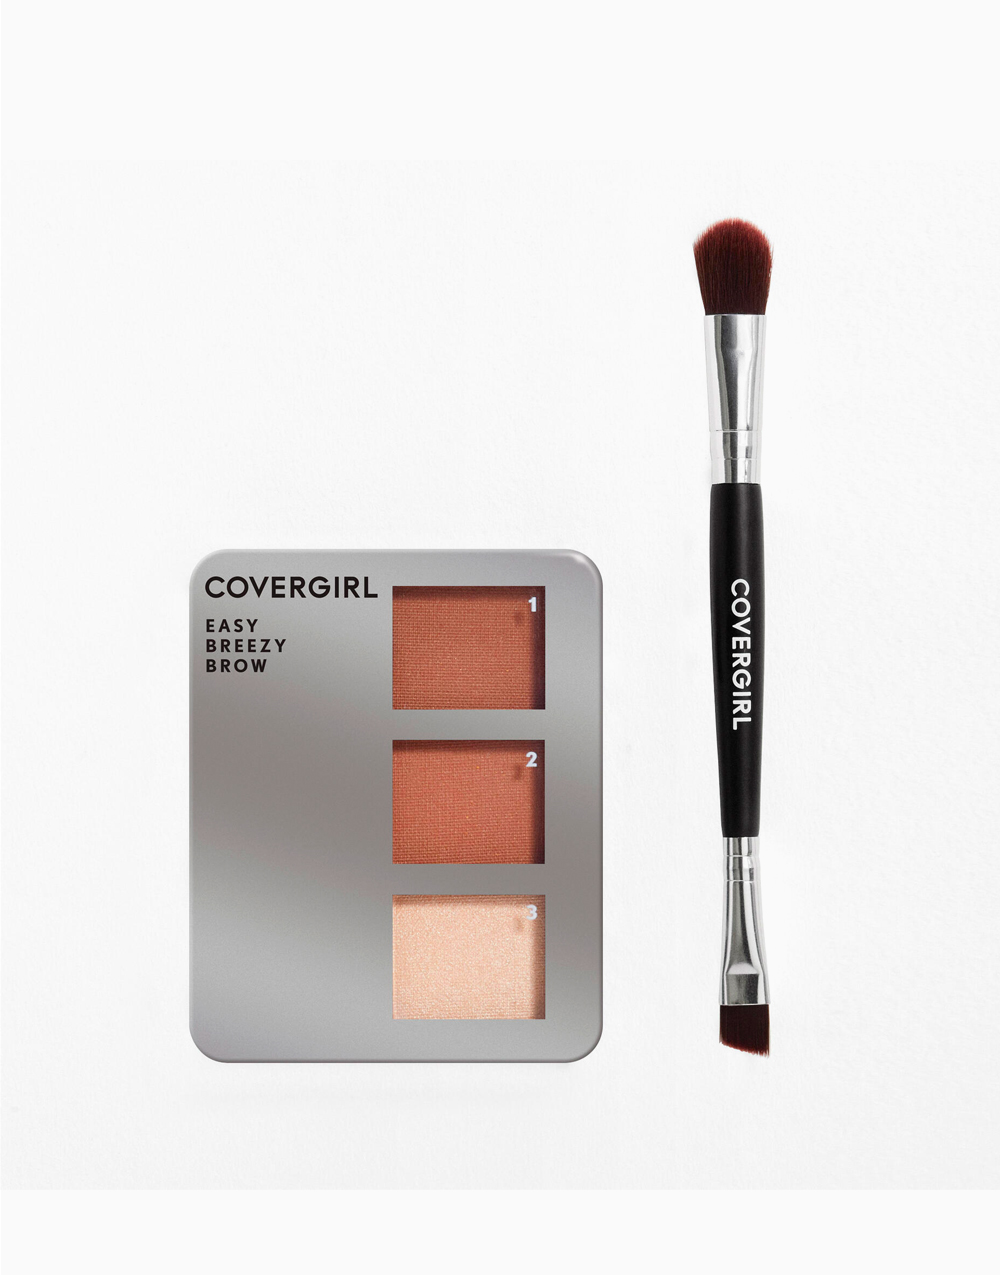 Easy Breezy Brow Powder Kit by CoverGirl | Soft Blonde